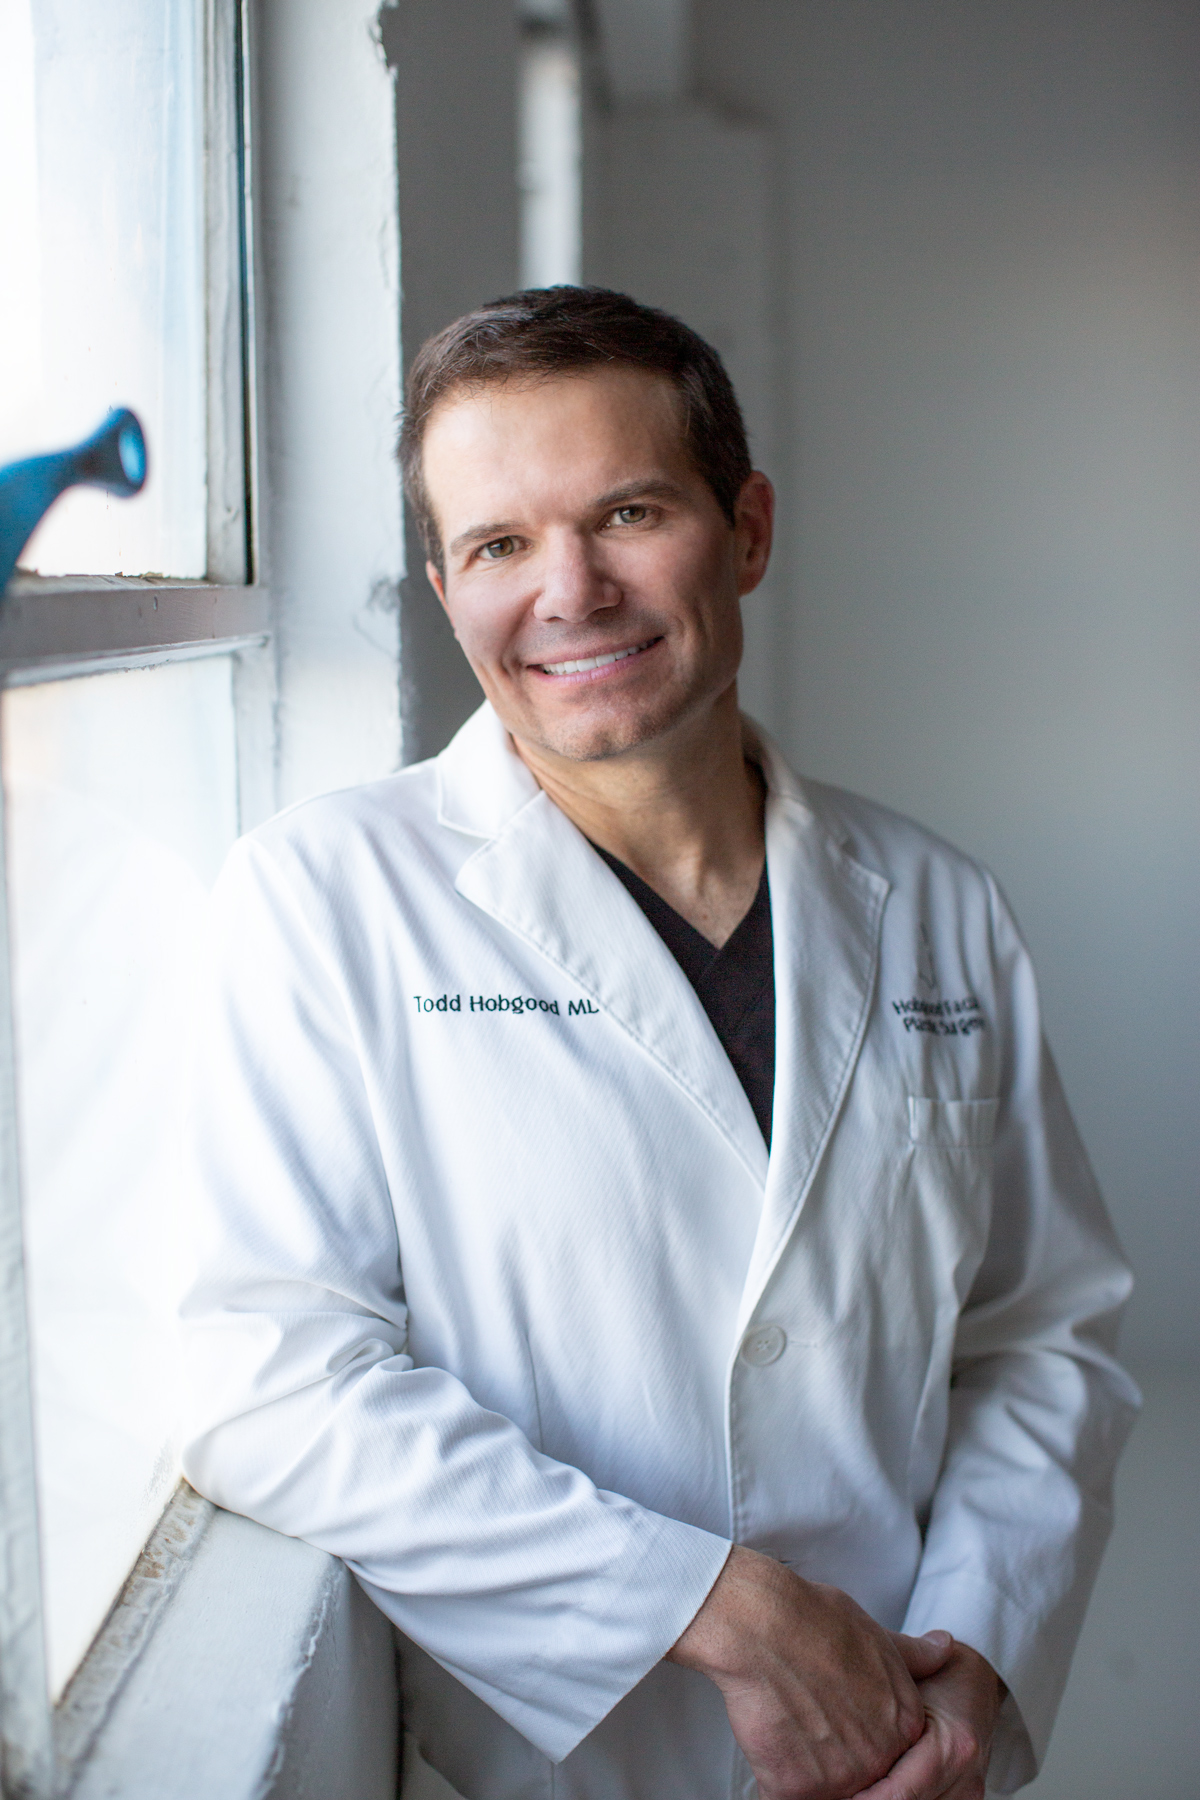 Double Board Certified Plastic Surgeon Dr. Todd Hobgood